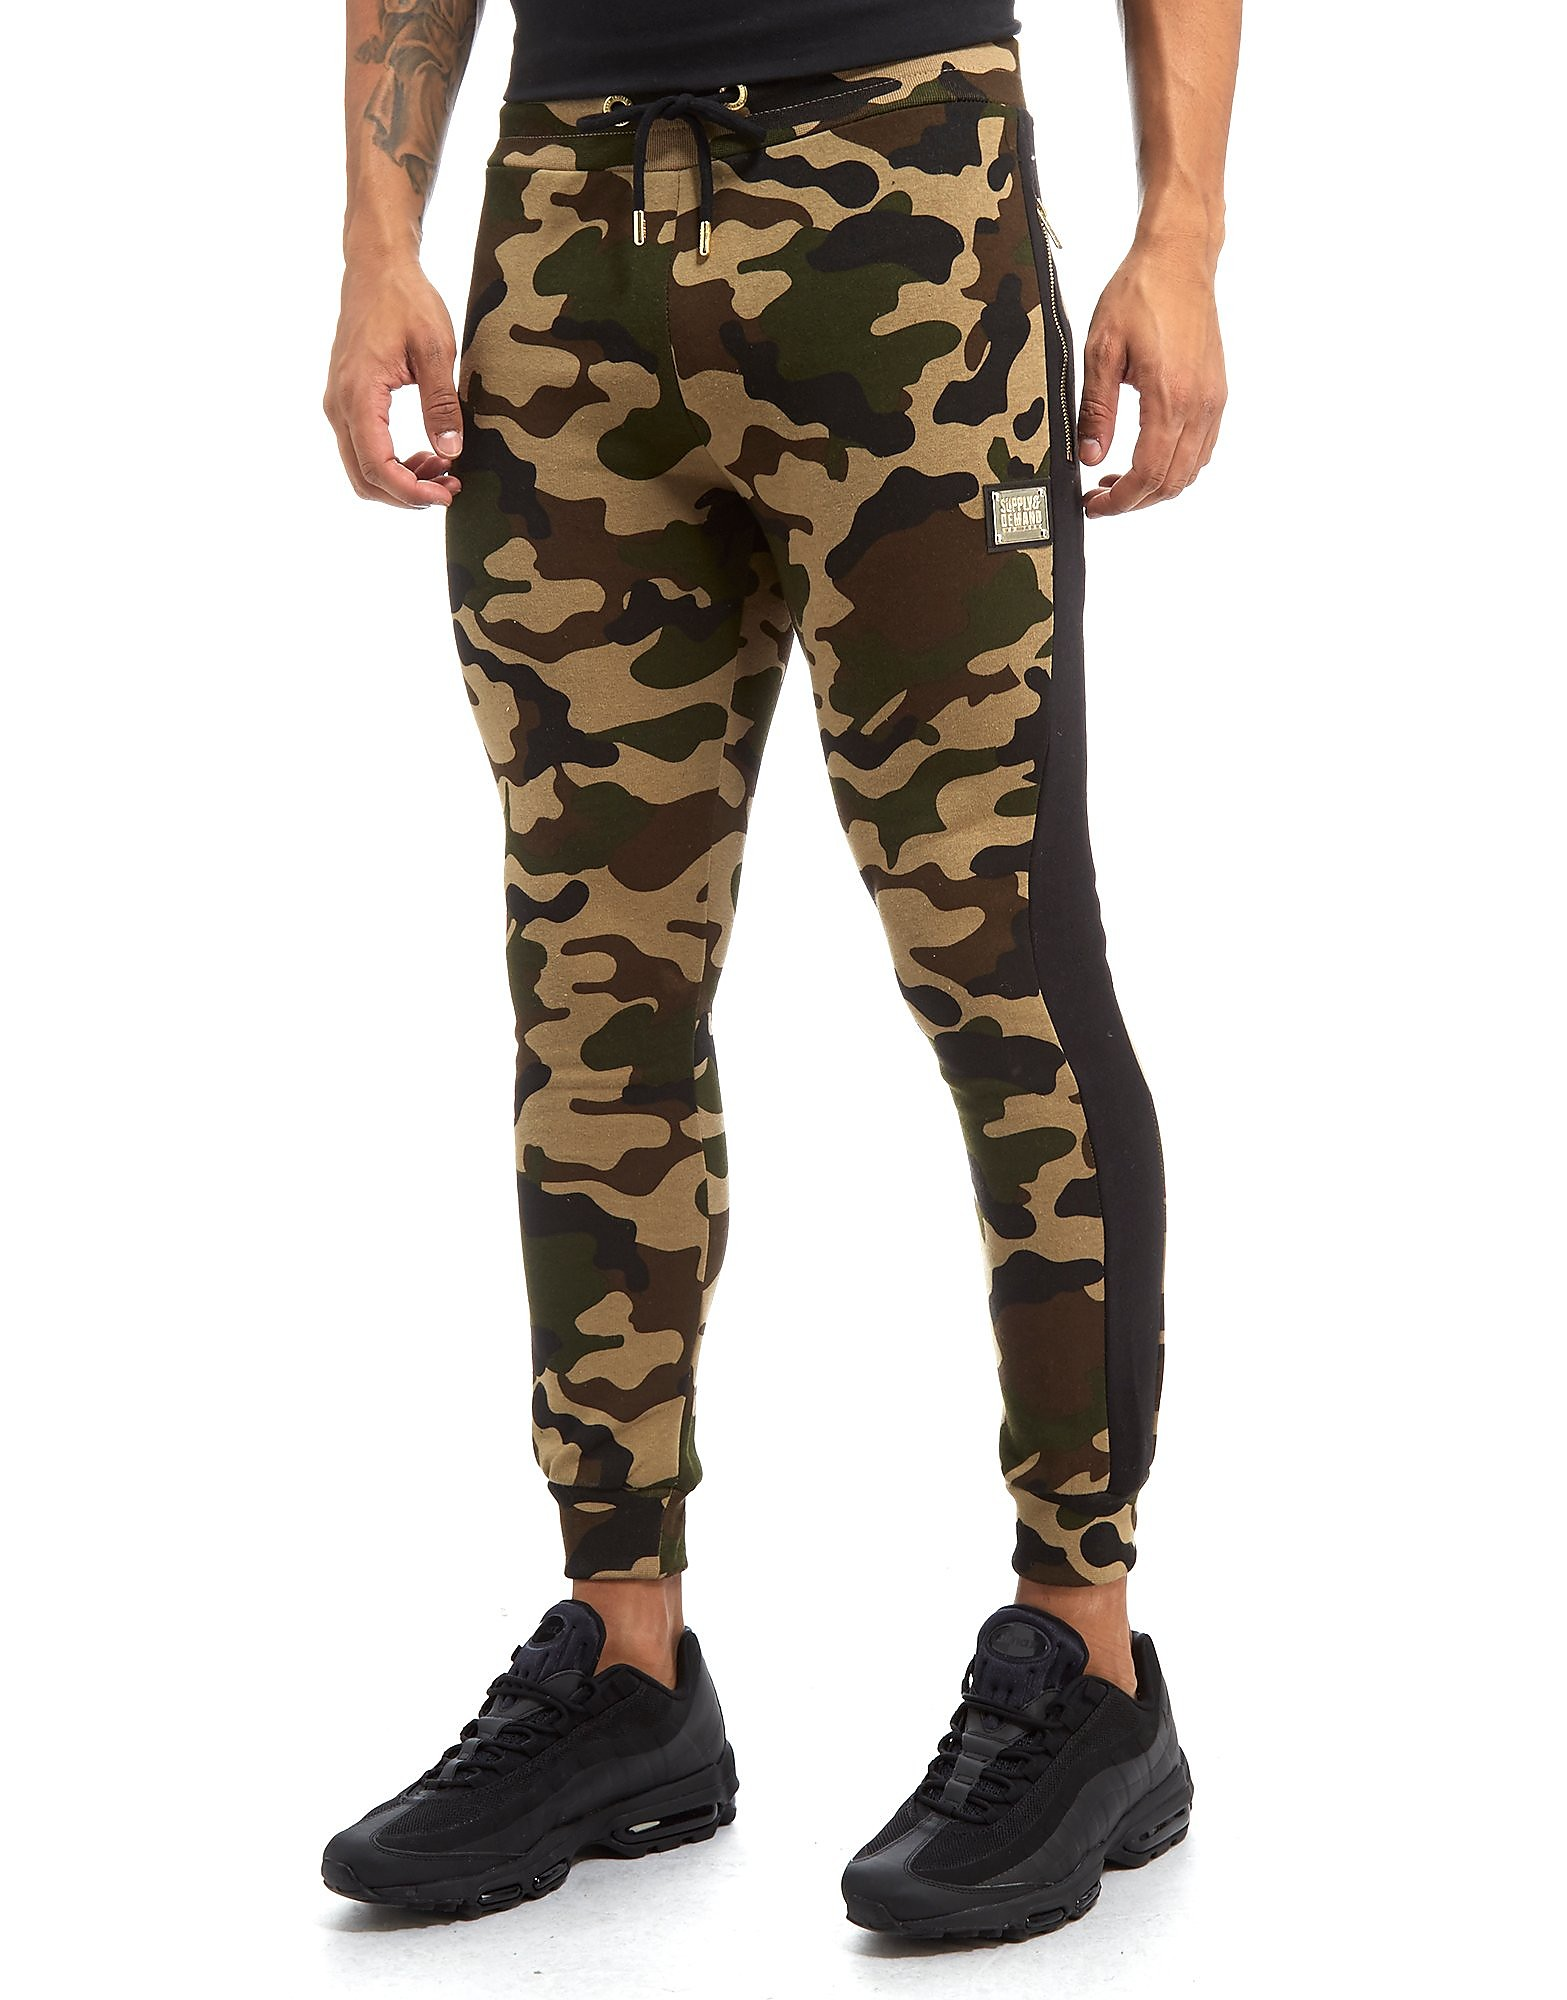 Supply & Demand Nova Joggers - Only at JD, Camo